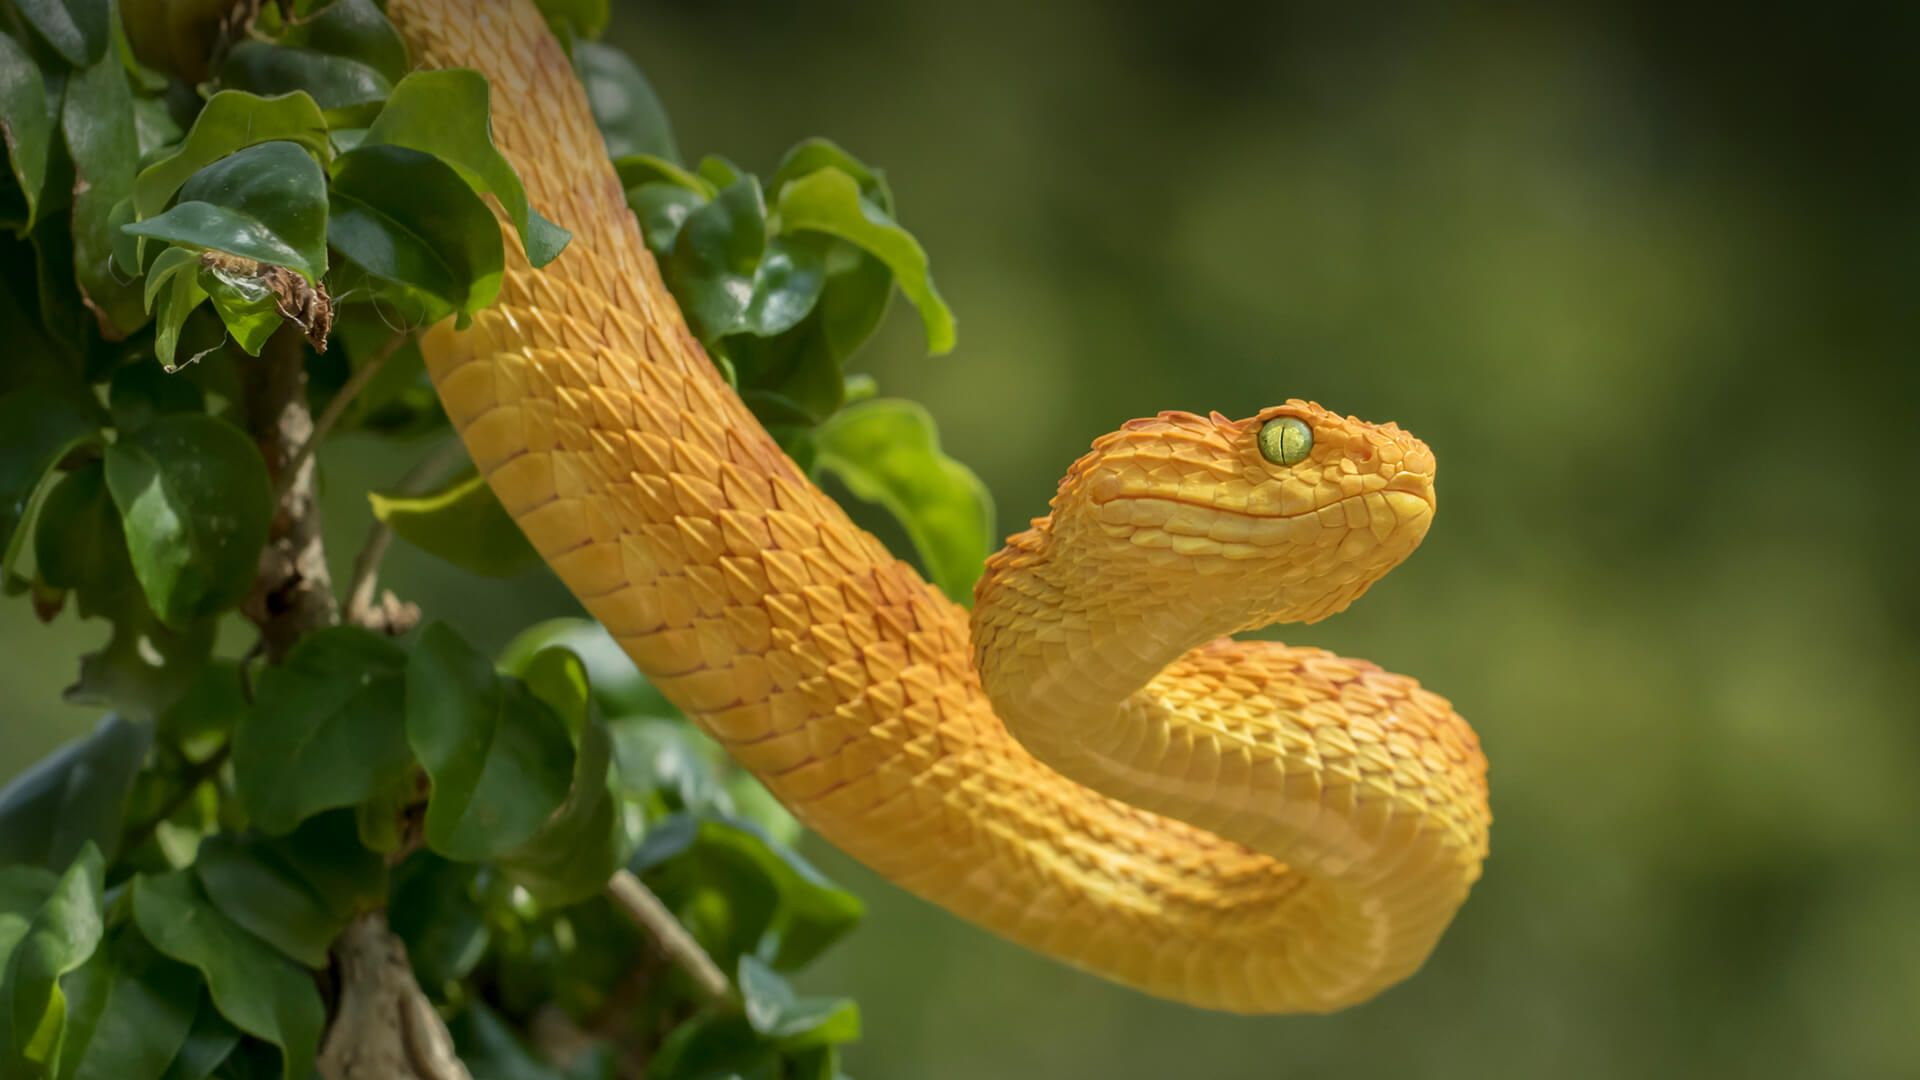 Ataris The Form Of A Snake